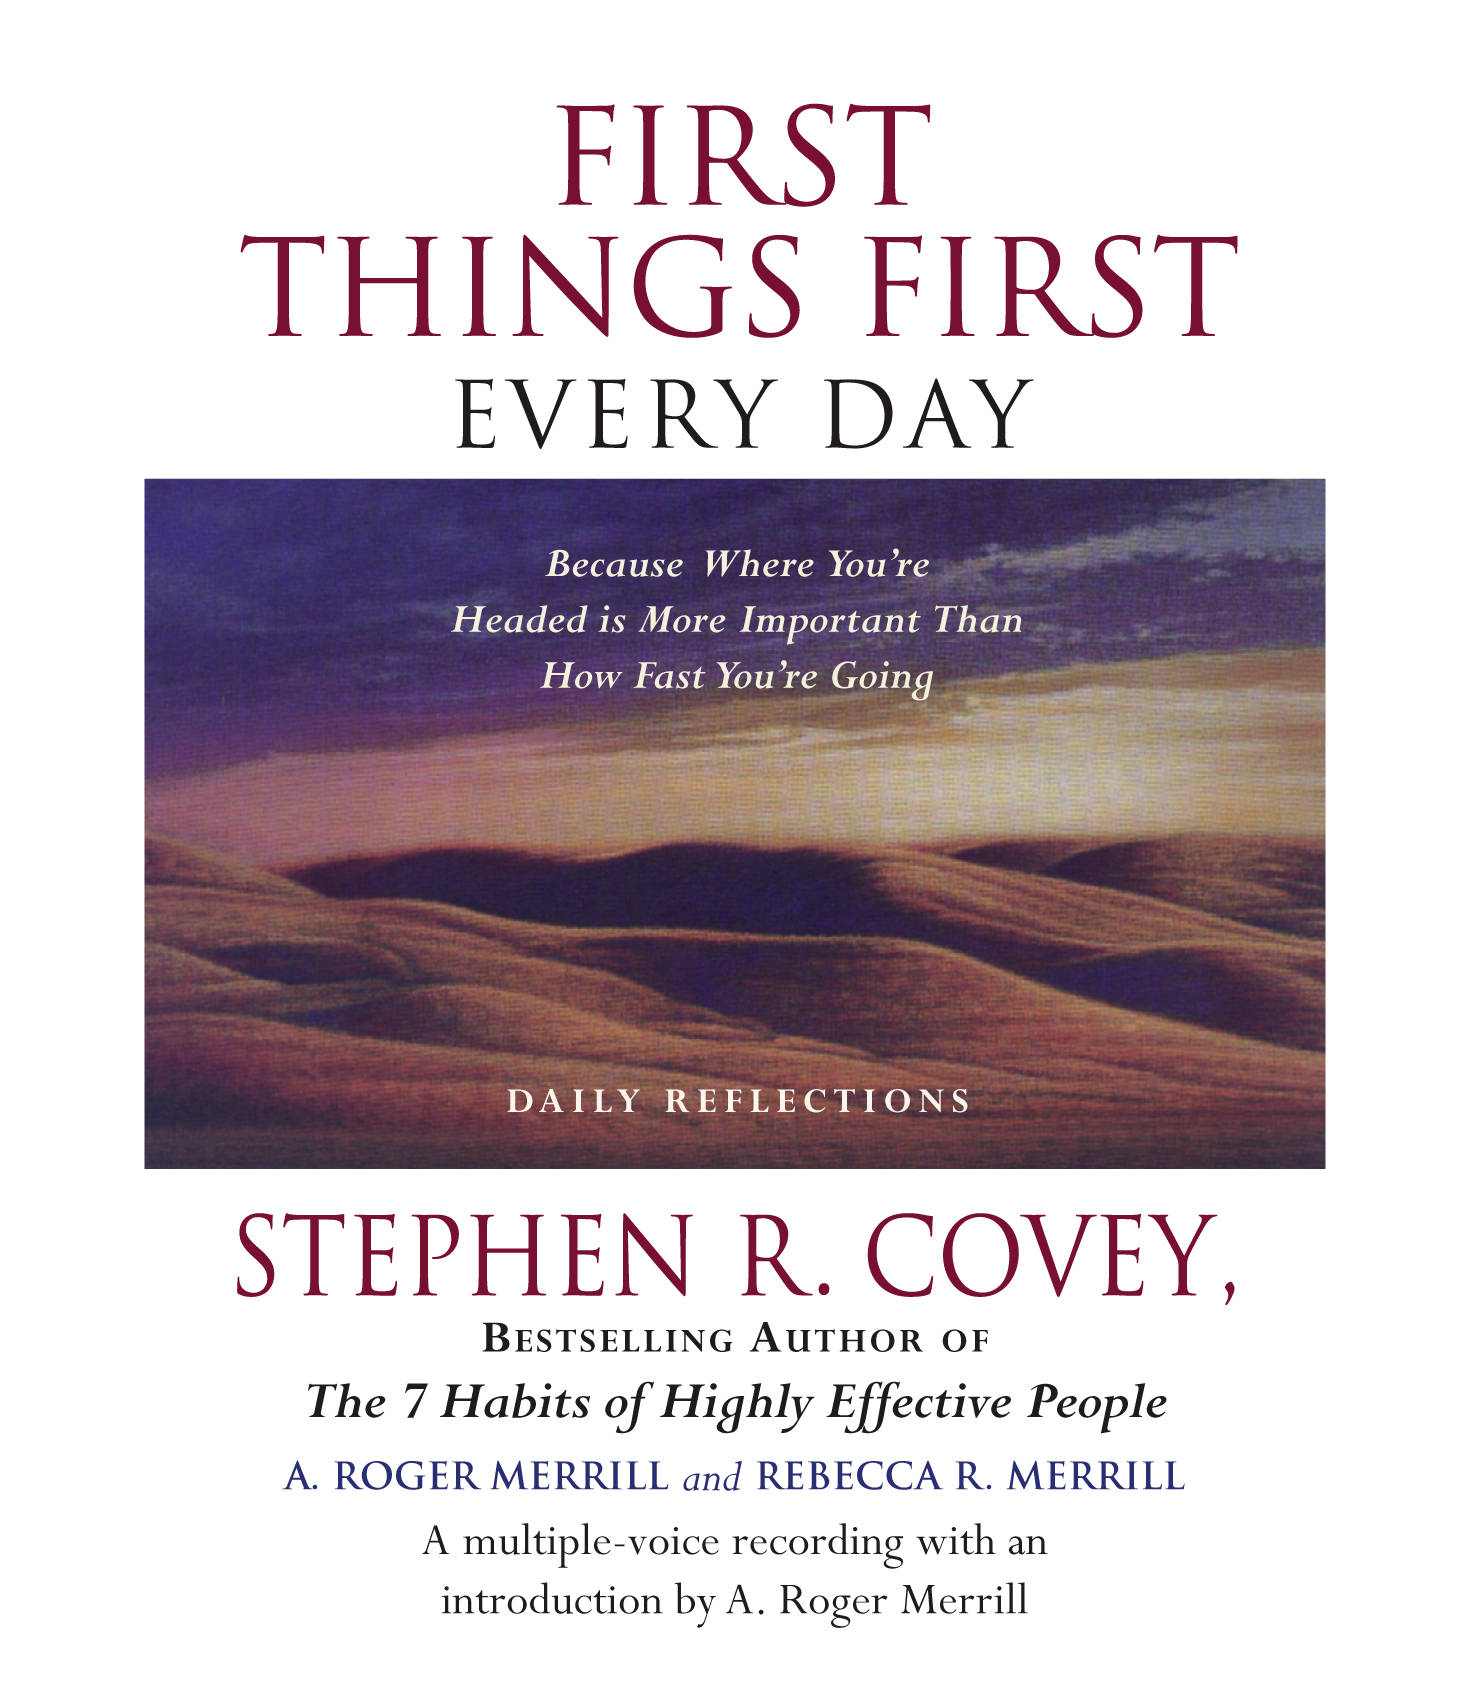 First things first every day stephen r covey pdf